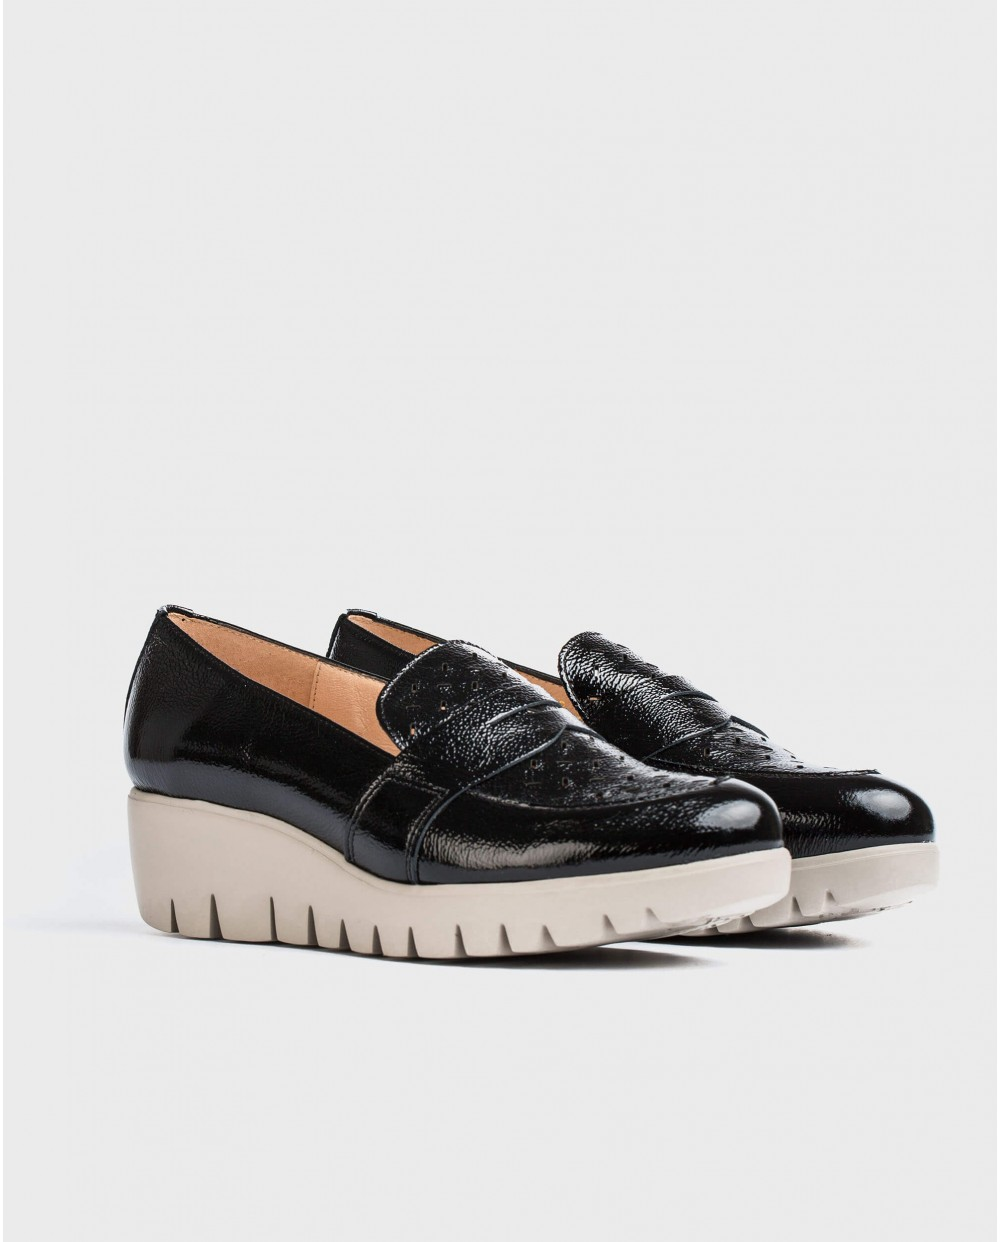 Wonders-Wedges-Moccasin with brogue detail